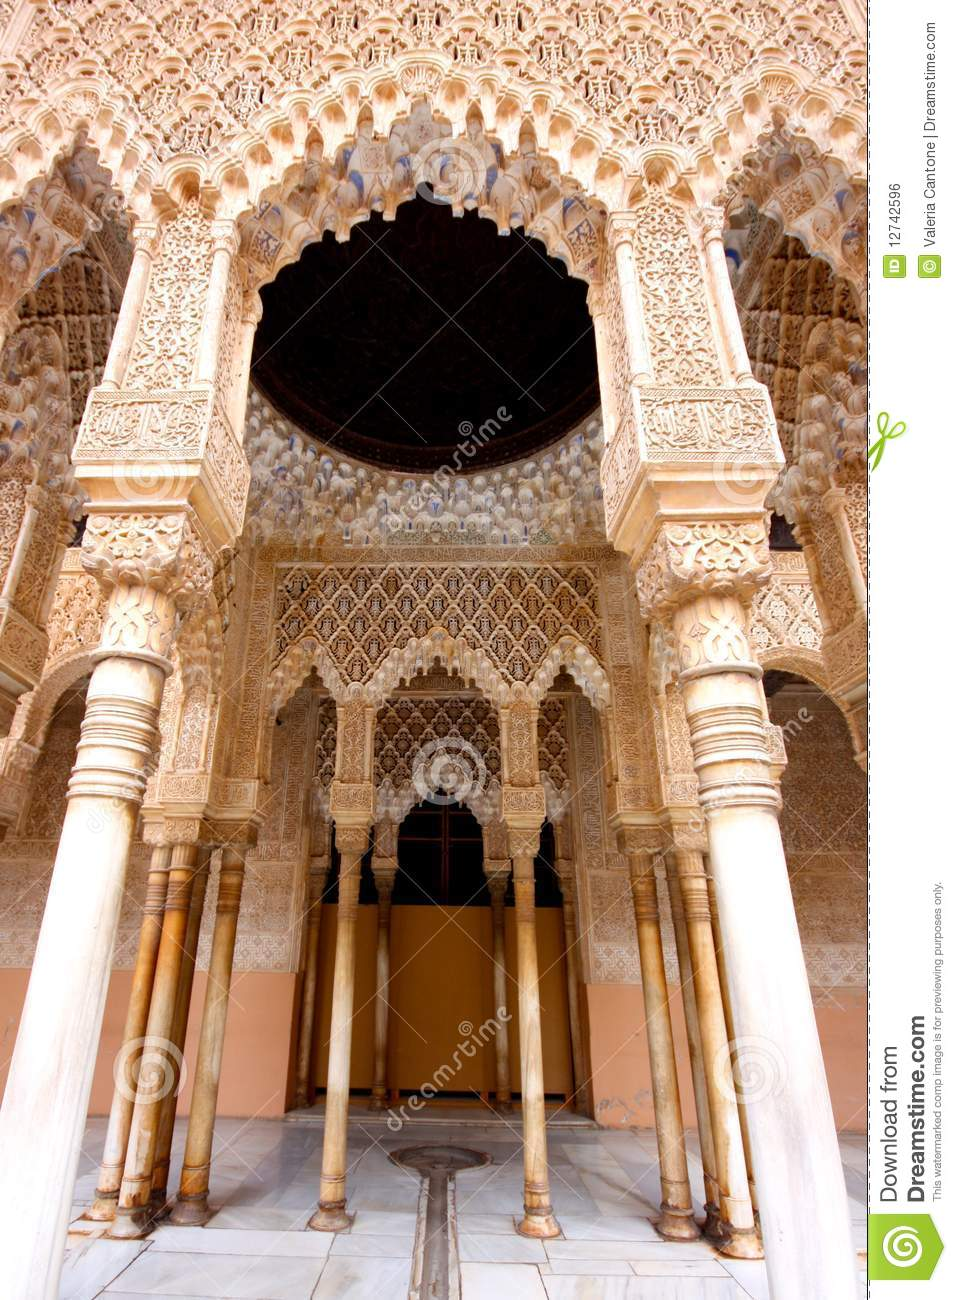 The Moorish Palace Of Alhambra In Granada Spain Royalty Free Stock Image Image 12742596